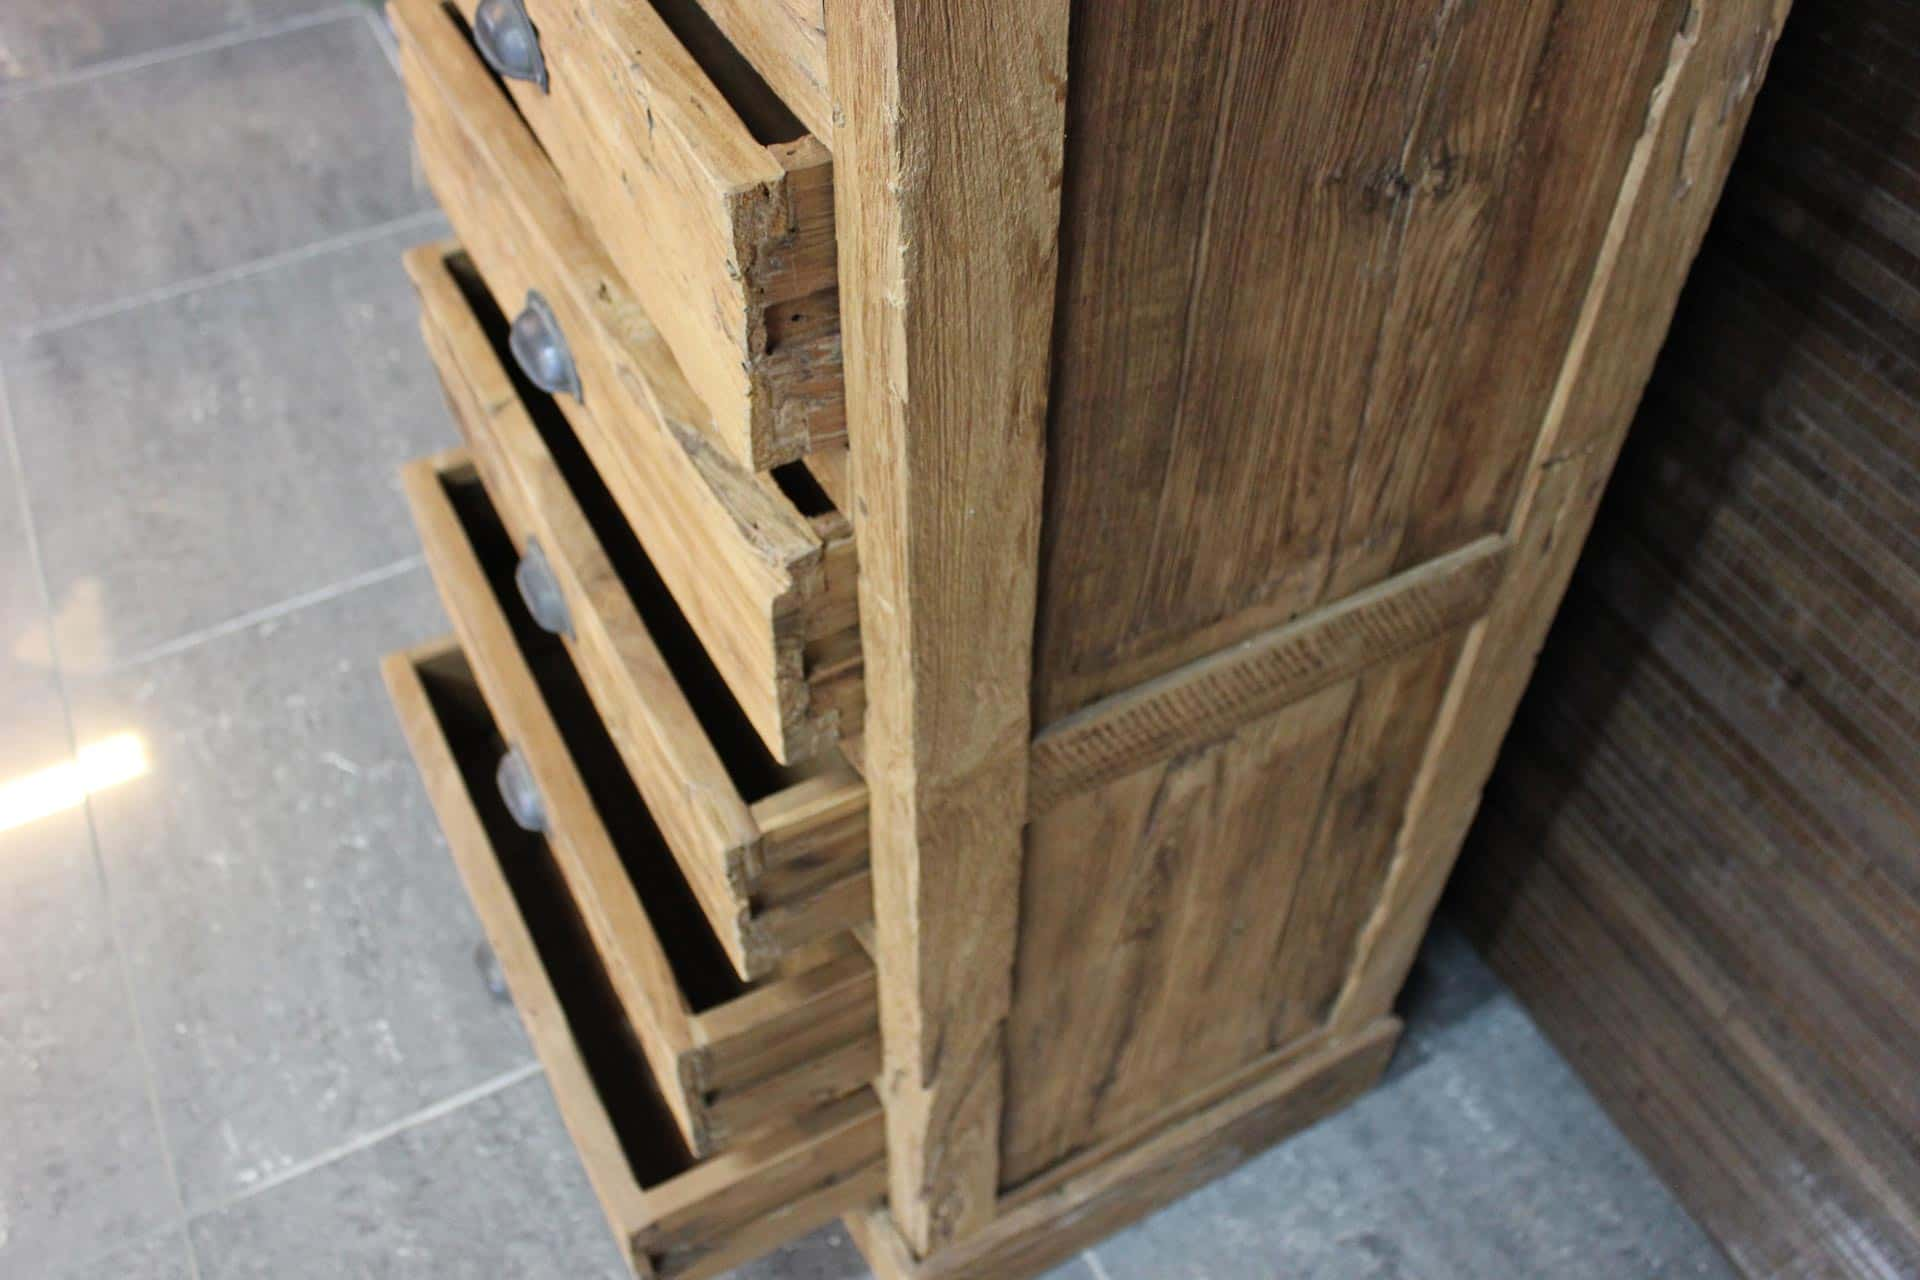 Cuci Remeh Laci 60E Old | narrow teak chest of drawers from Indonesia. This unusual narrow teak cabinet is made of old erosion teak. Furniture shop TEAK2.